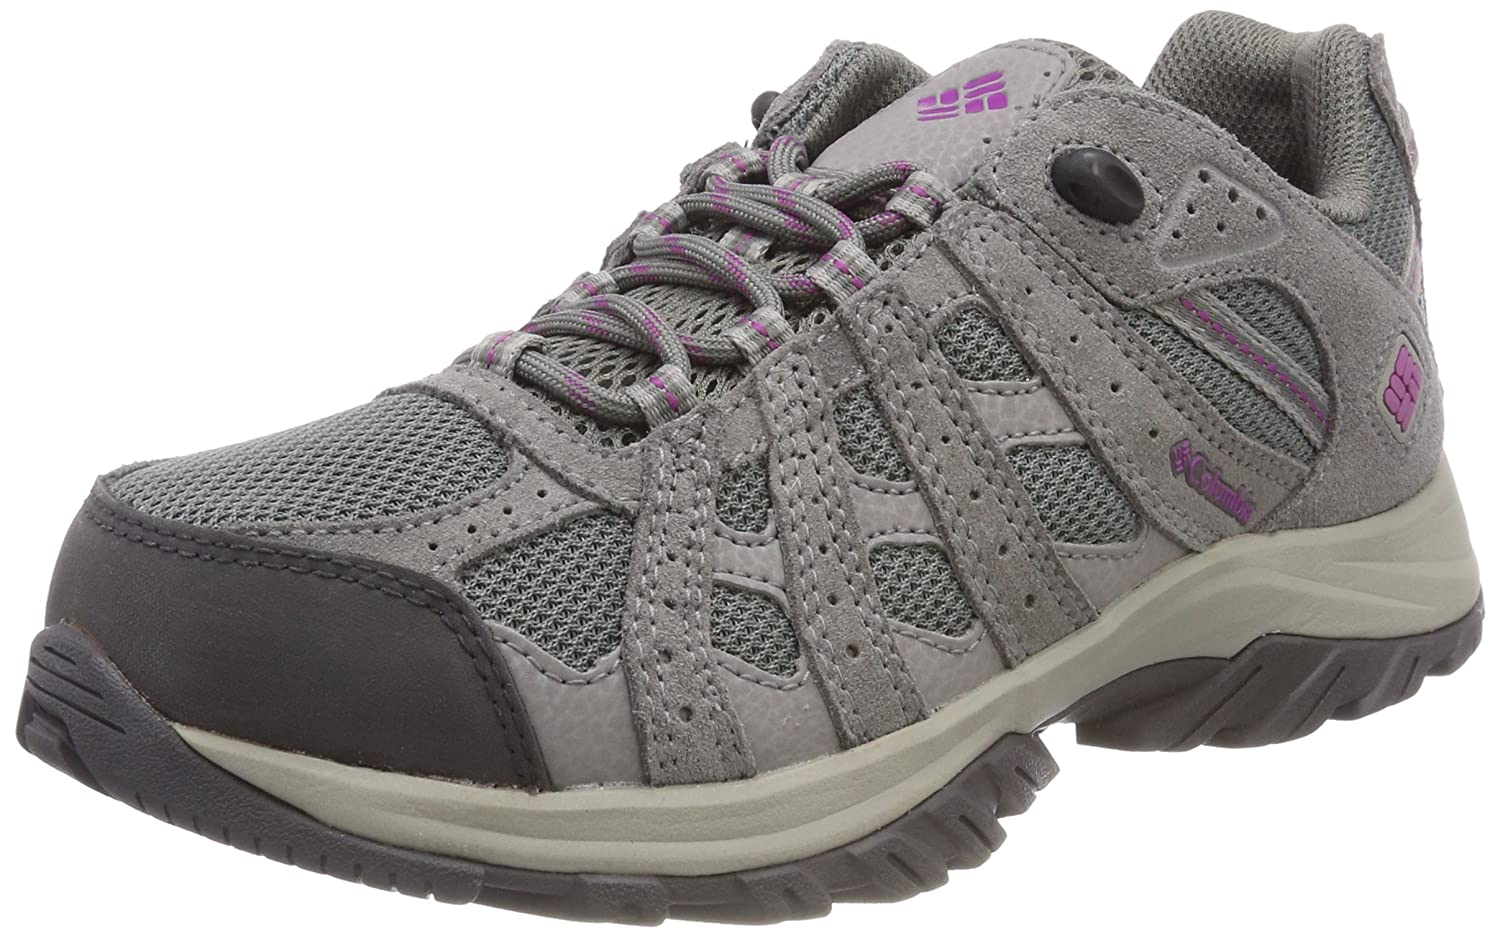 gris (Charcoal, Razzle) Columbia Femme Chaussures Multisport, Imperméable, CANYON POINT 43 EU